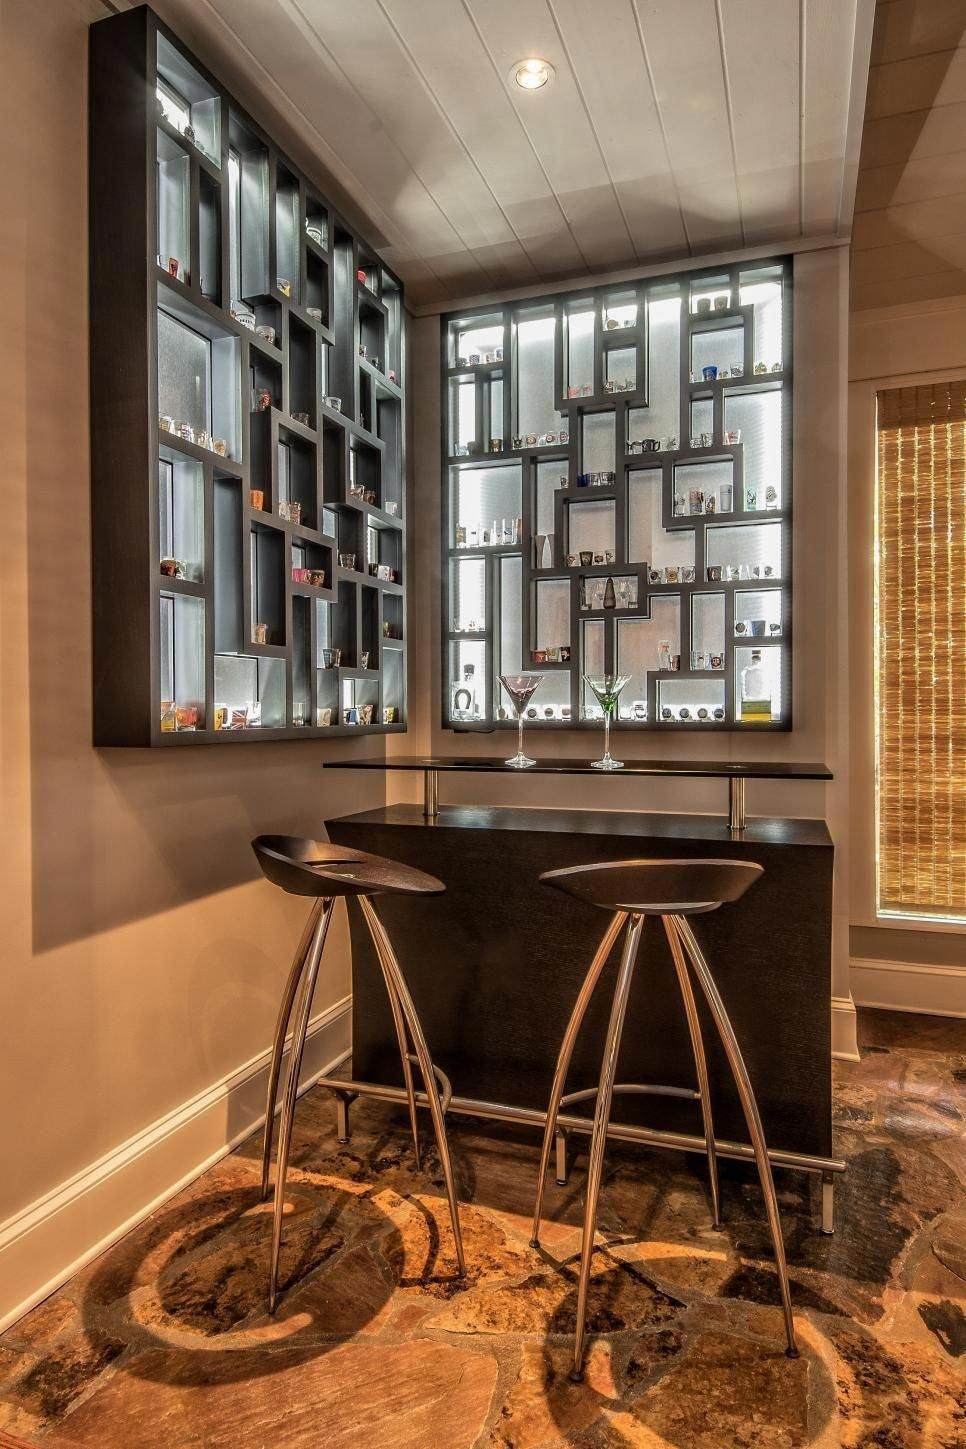 Looking For Home Bar Ideas For Your Basement Bonus Room Home Theater Or Lounge Area Browse These Pictures To Find Home Bar Rooms Bars For Home Diy Home Bar